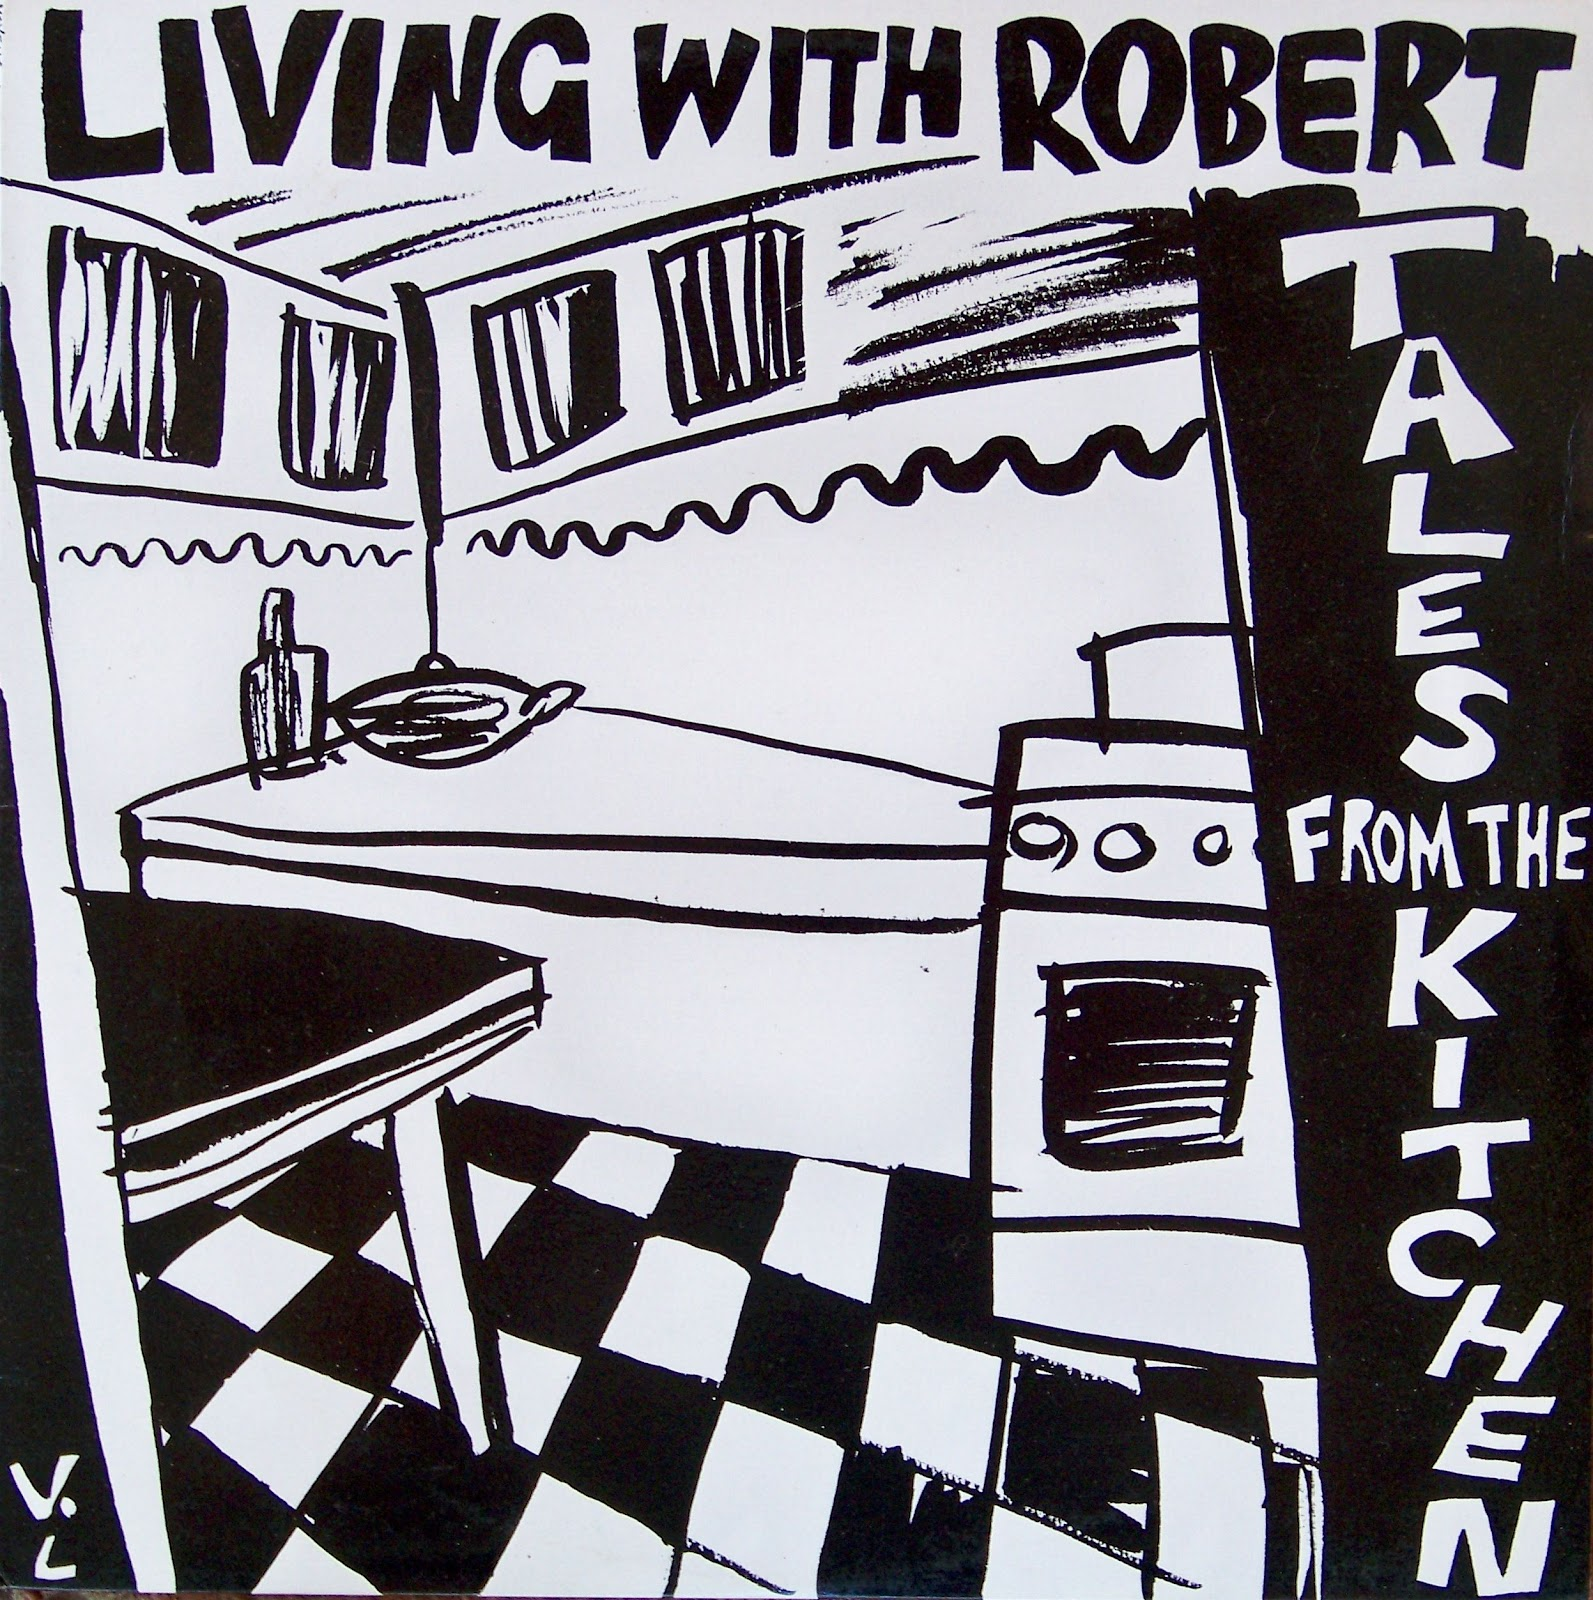 Mr Worthy and Whammo: Living With Robert - Tales From The Kitchen